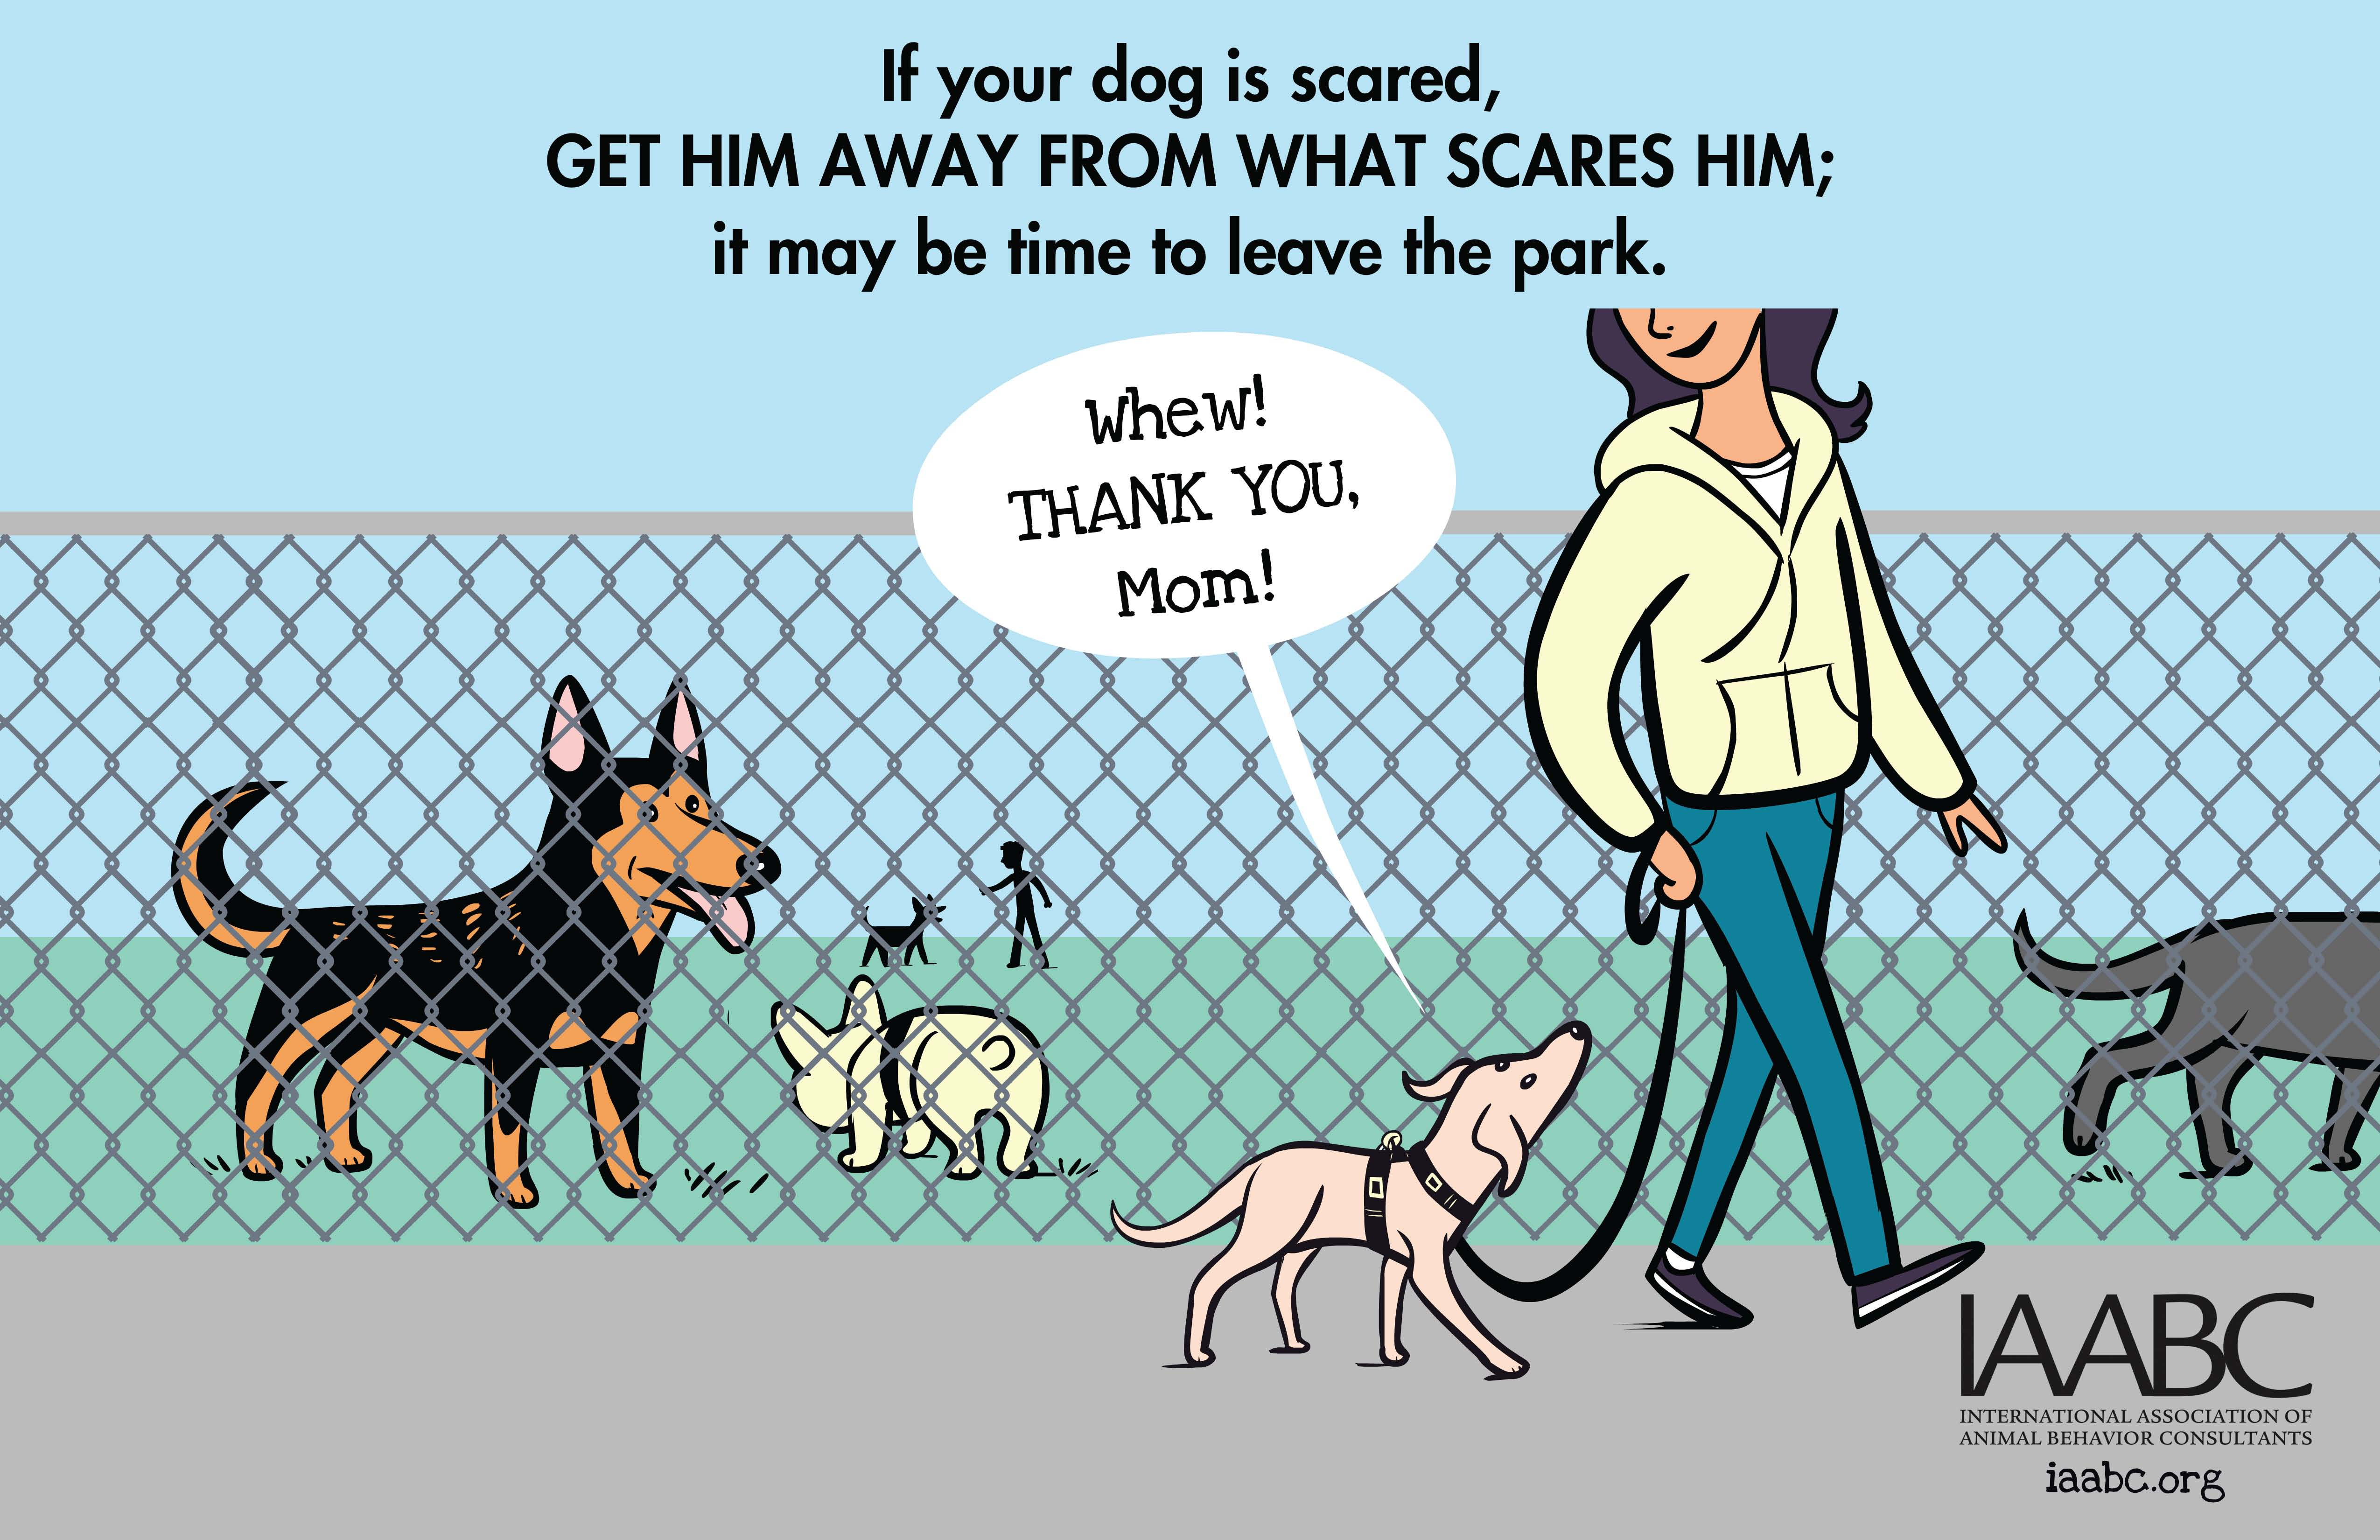 How To Get A Dog Ready For The Dog Park